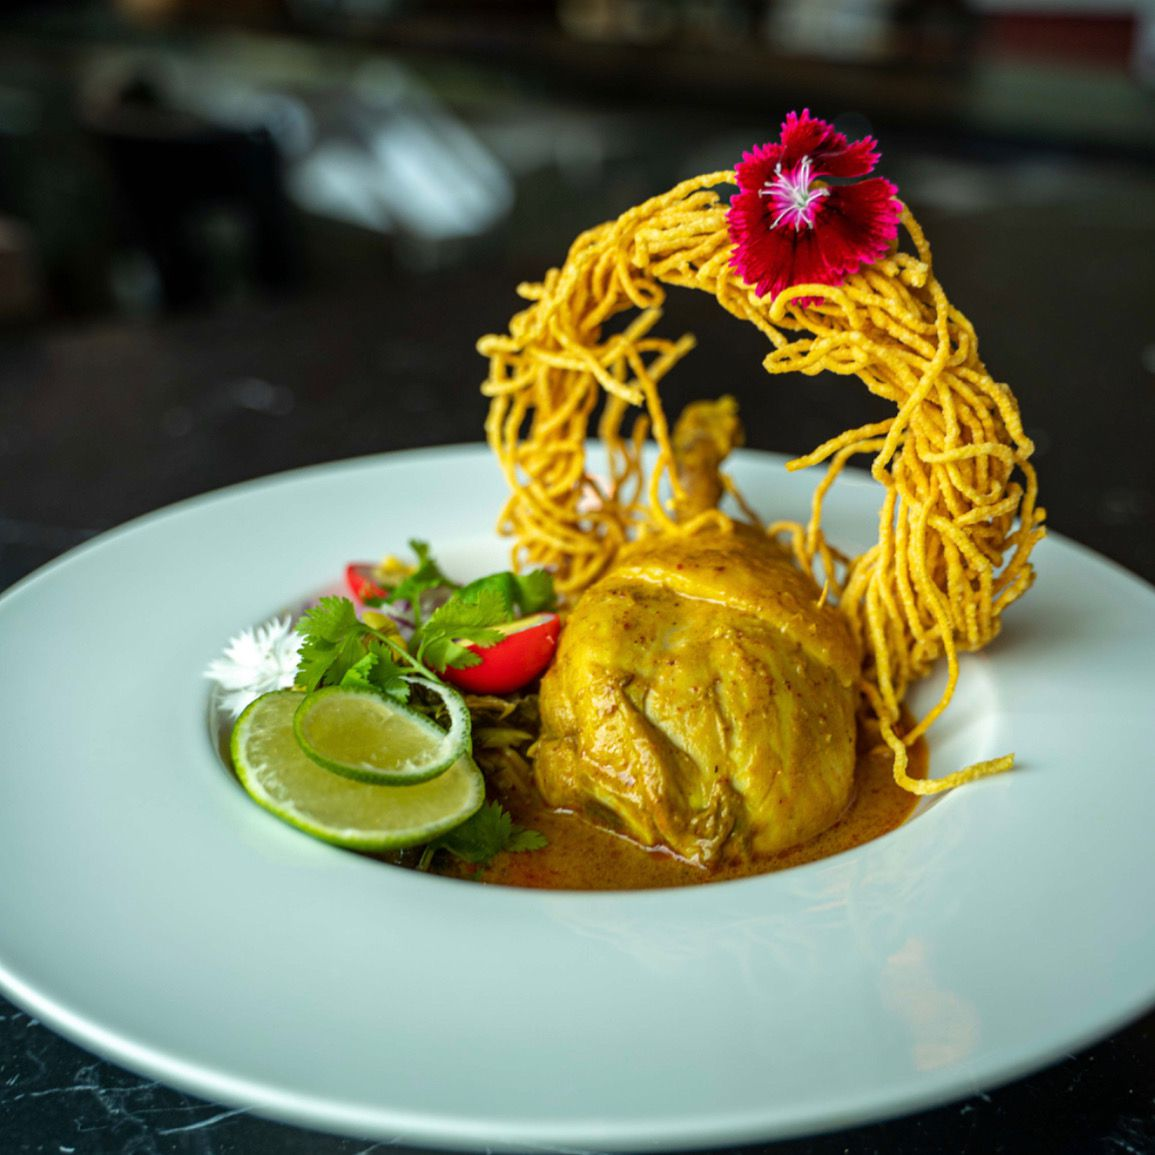 Khao soi gai (noodles with chicken, lime, and quail egg in curry)